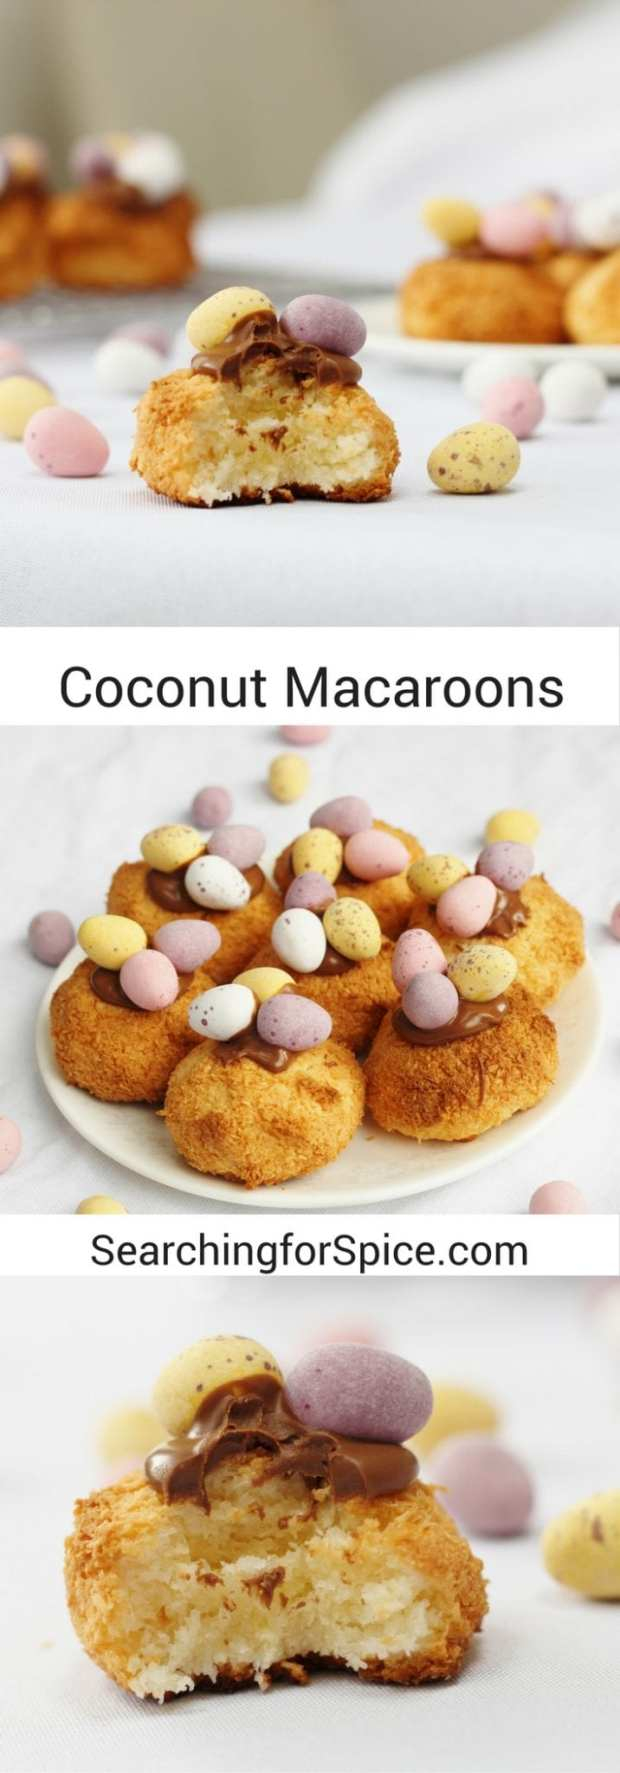 Coconut macaroons topped with melted chocolate and mini eggs. The perfect easy Easter bake to make with and for your children. Coconut macaroon nests